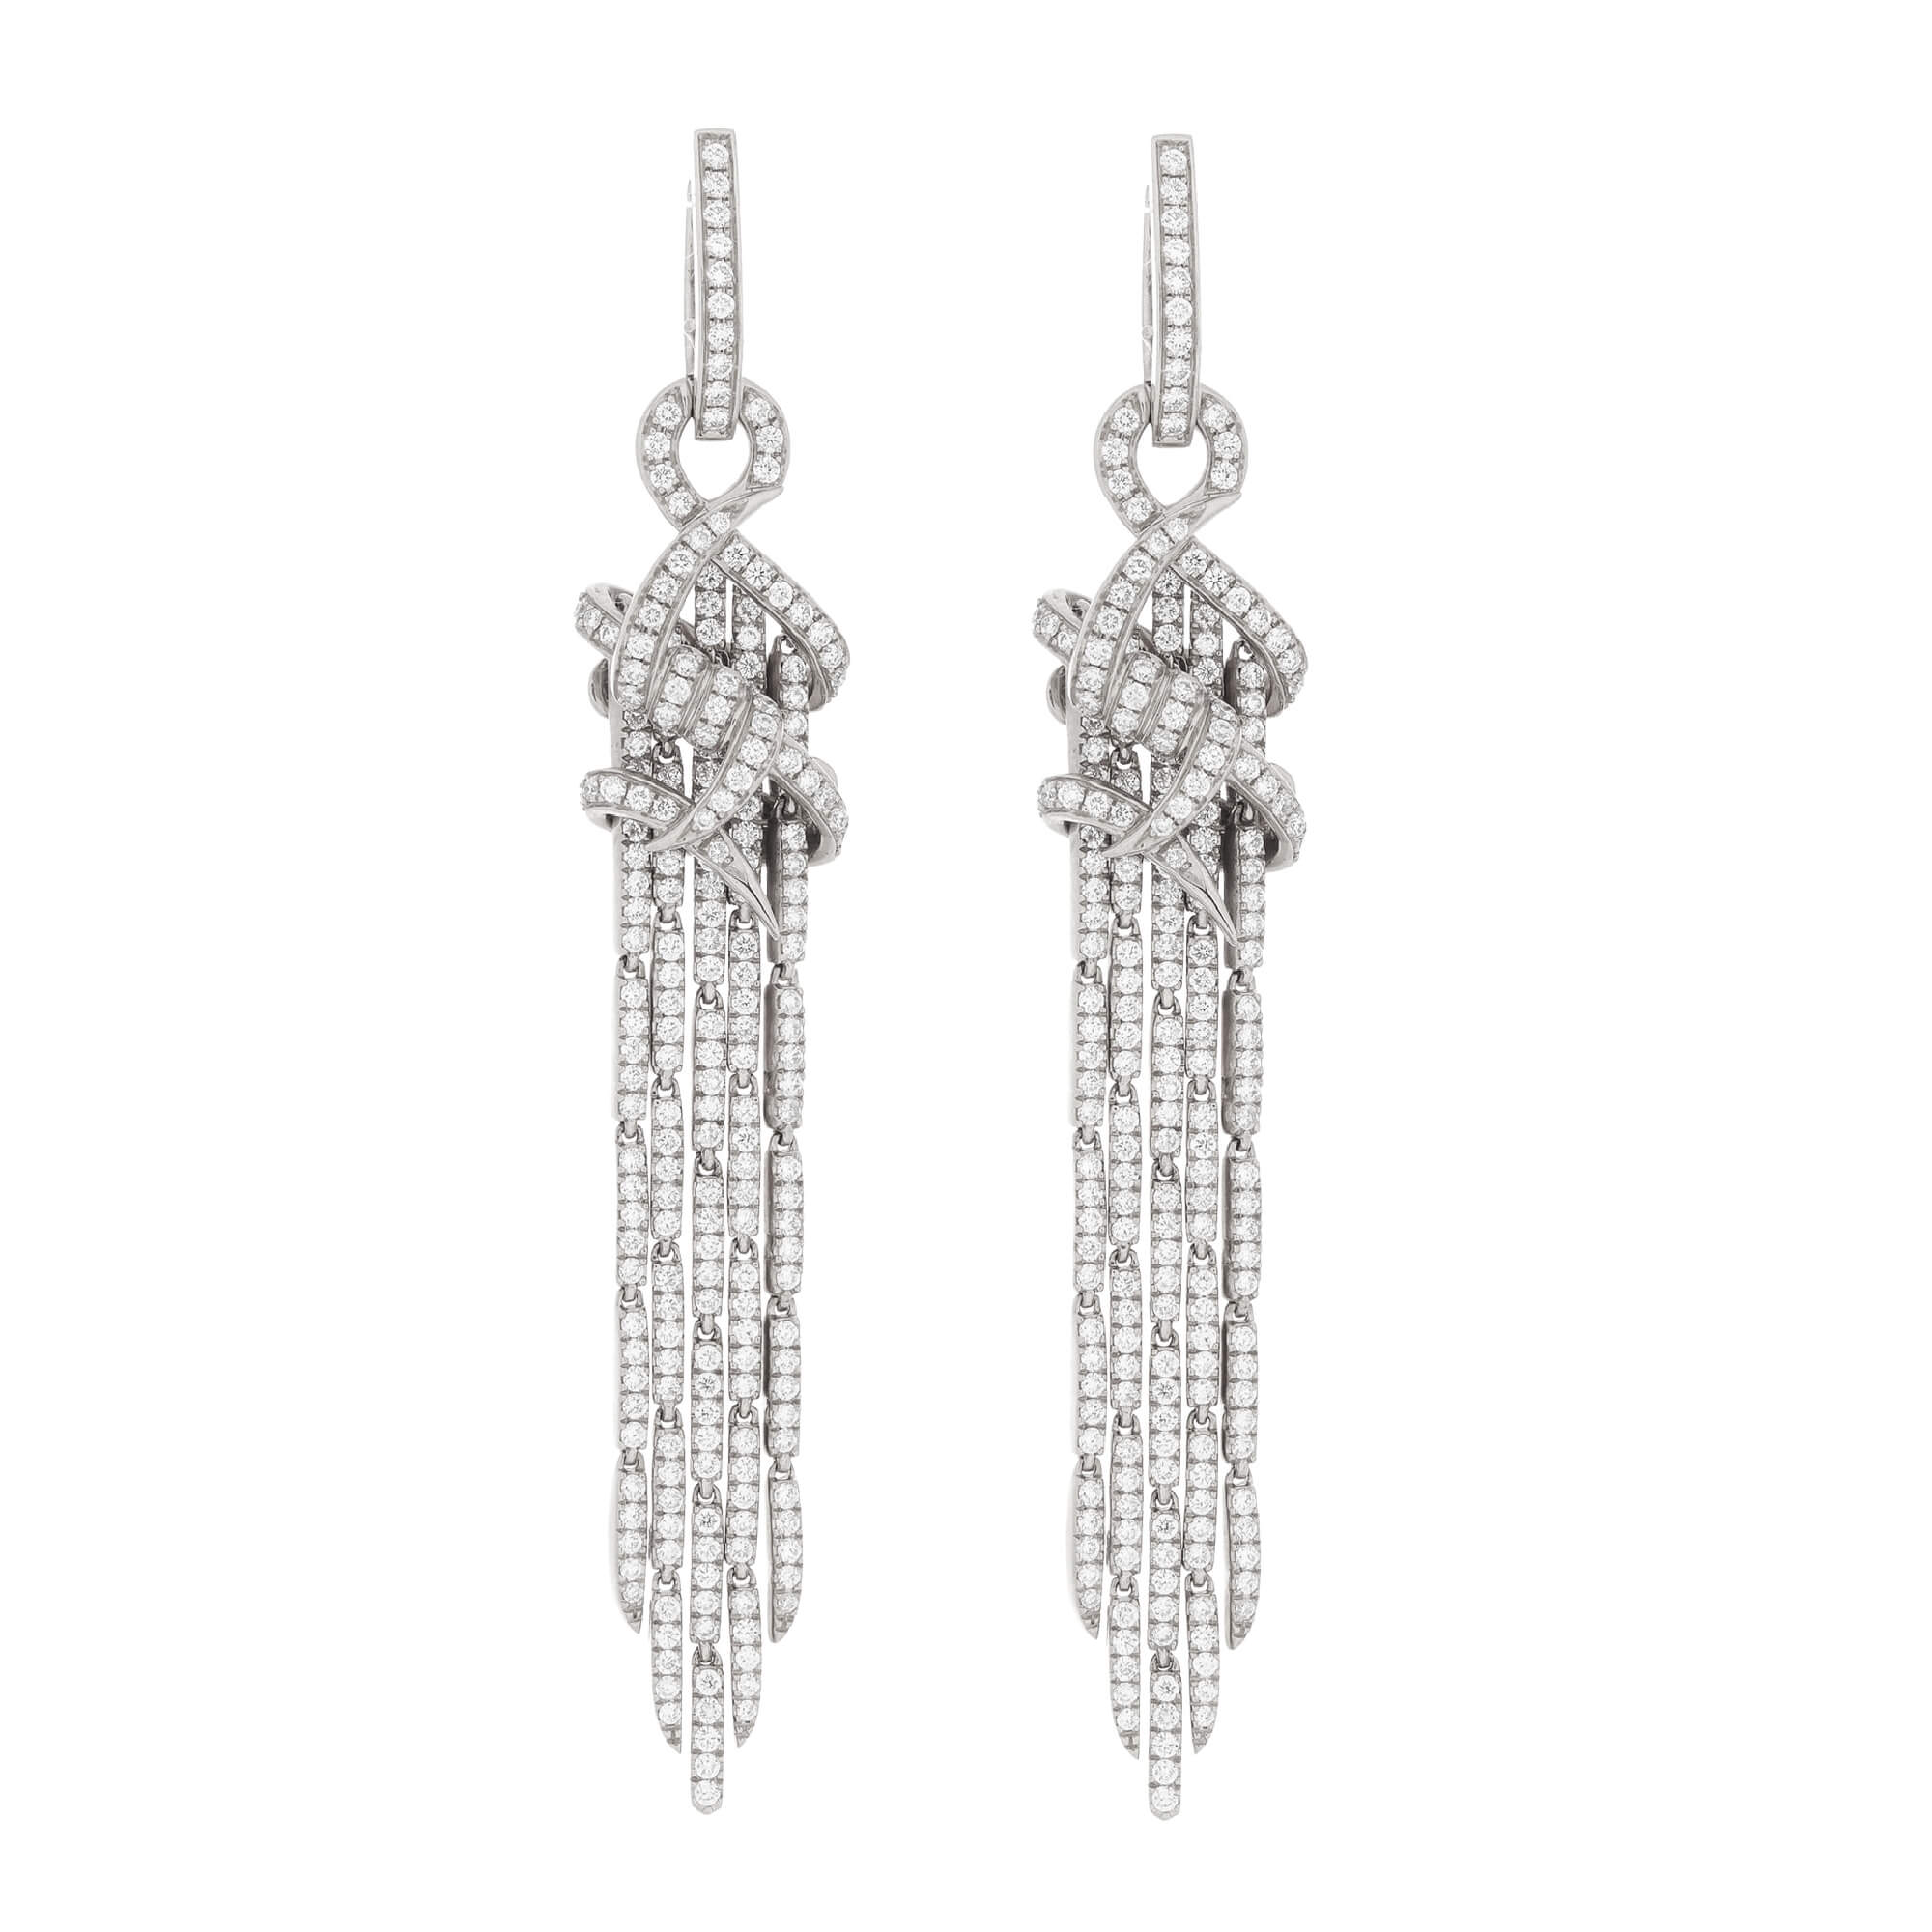 Cascade Earrings in White Gold | Deco